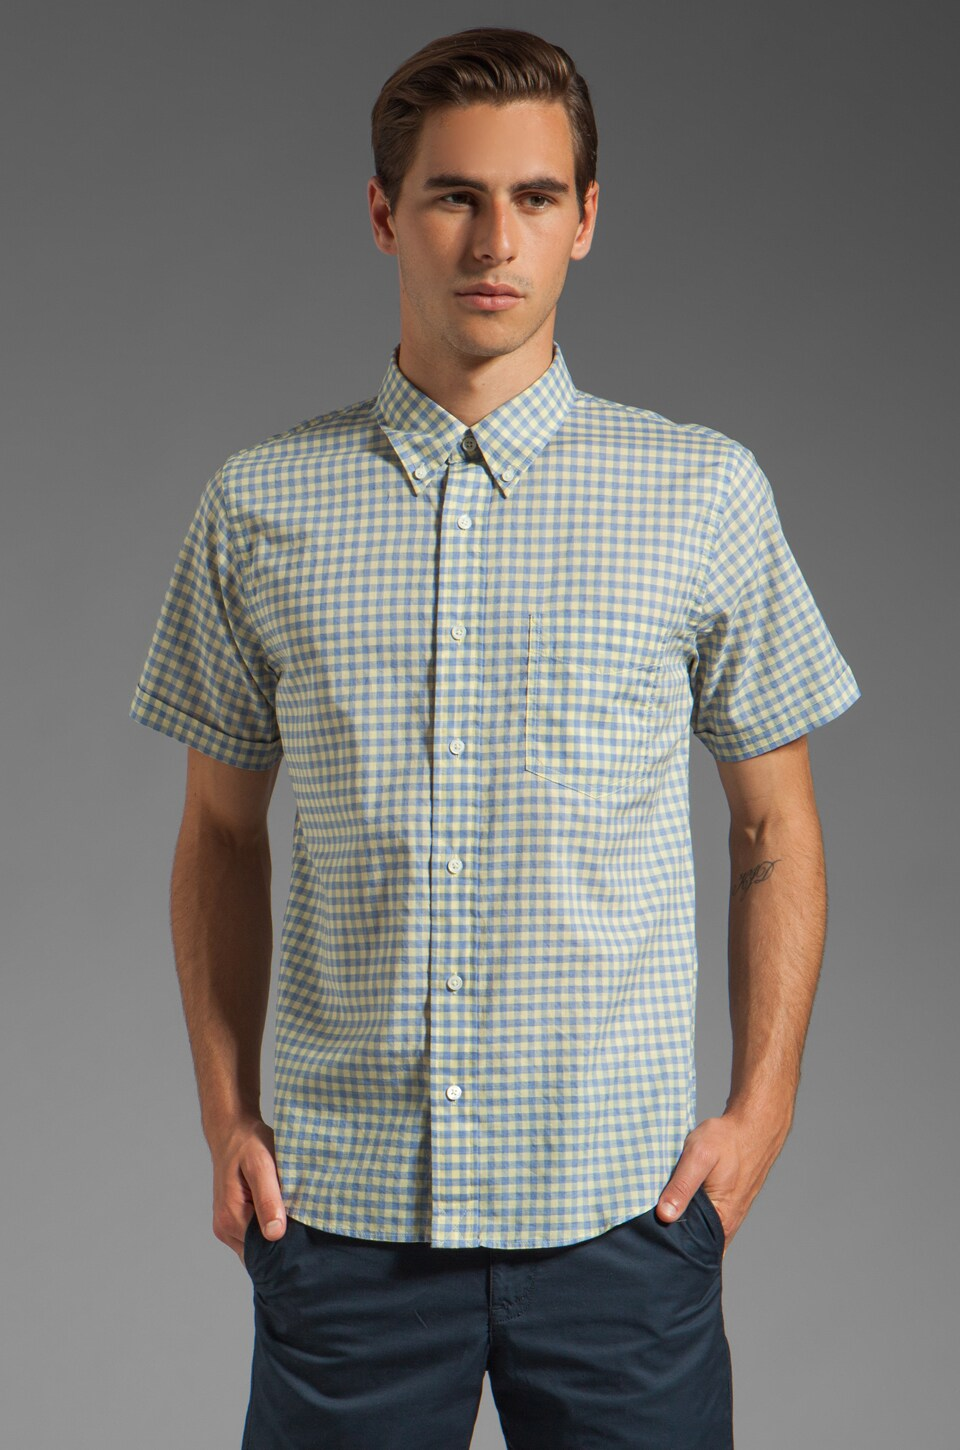 Jack Spade Benny Gingham Shirt in Yellow